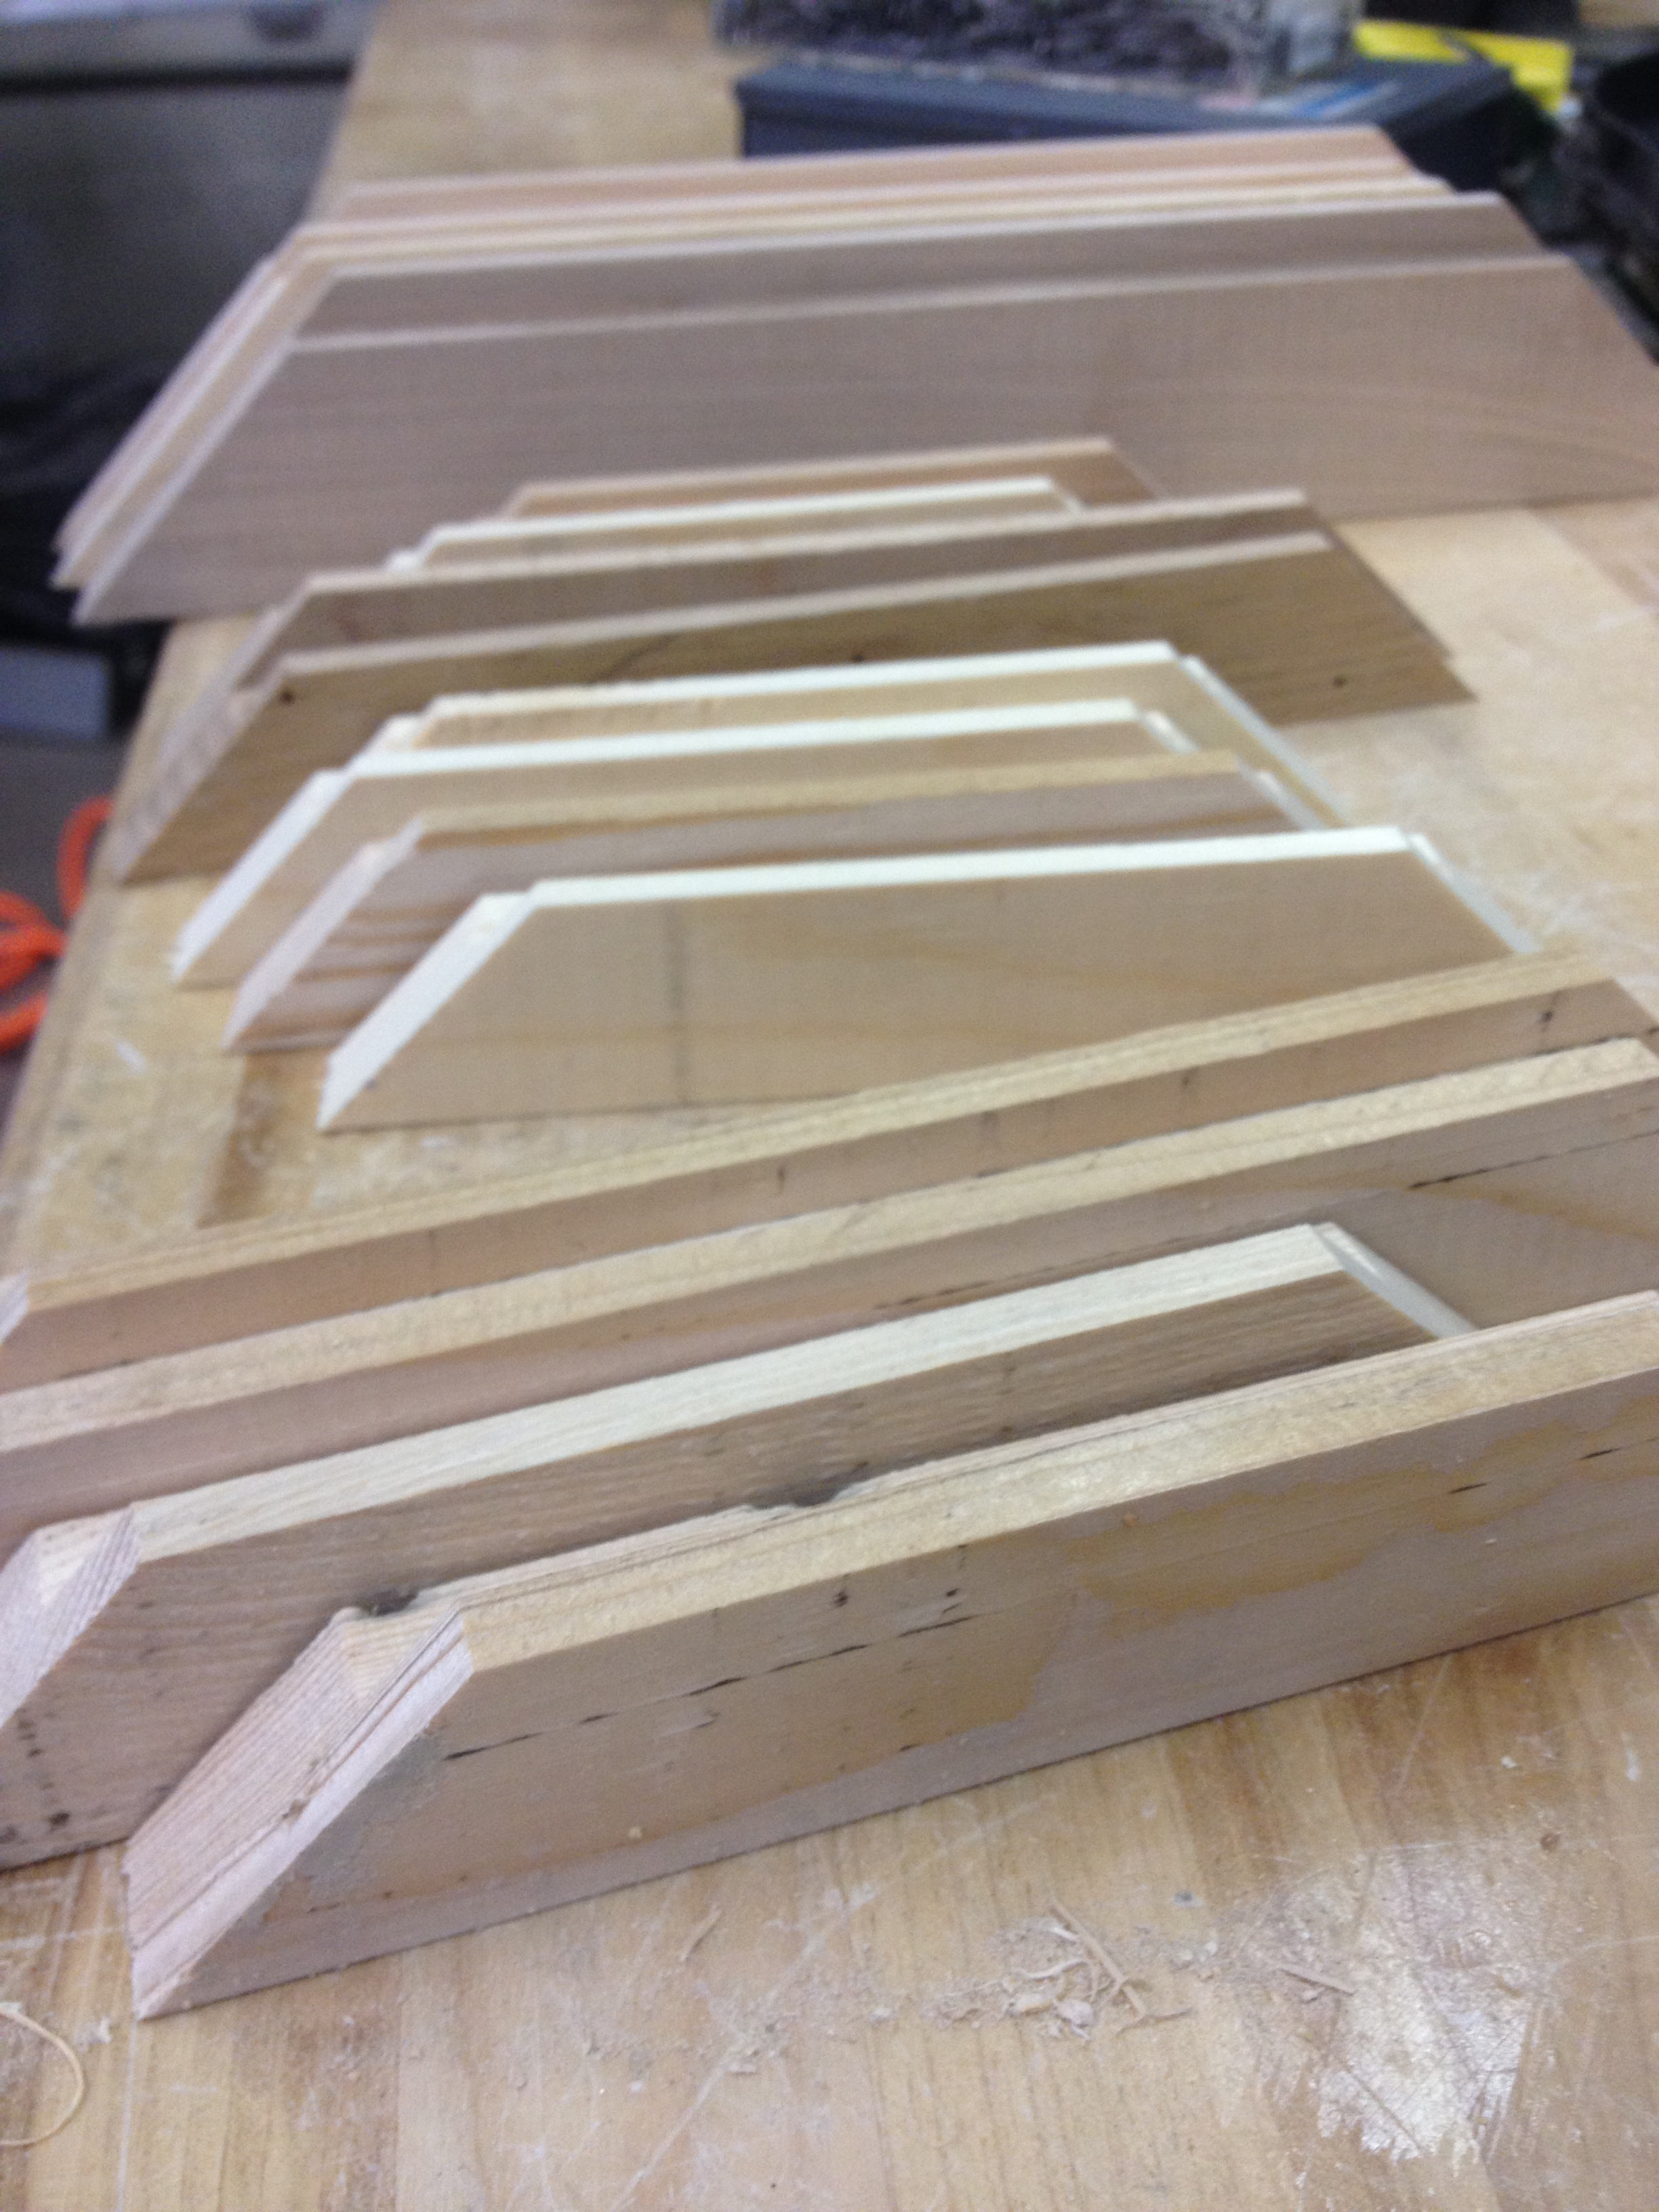 Reclaimed wood picture frame parts in several sizes.